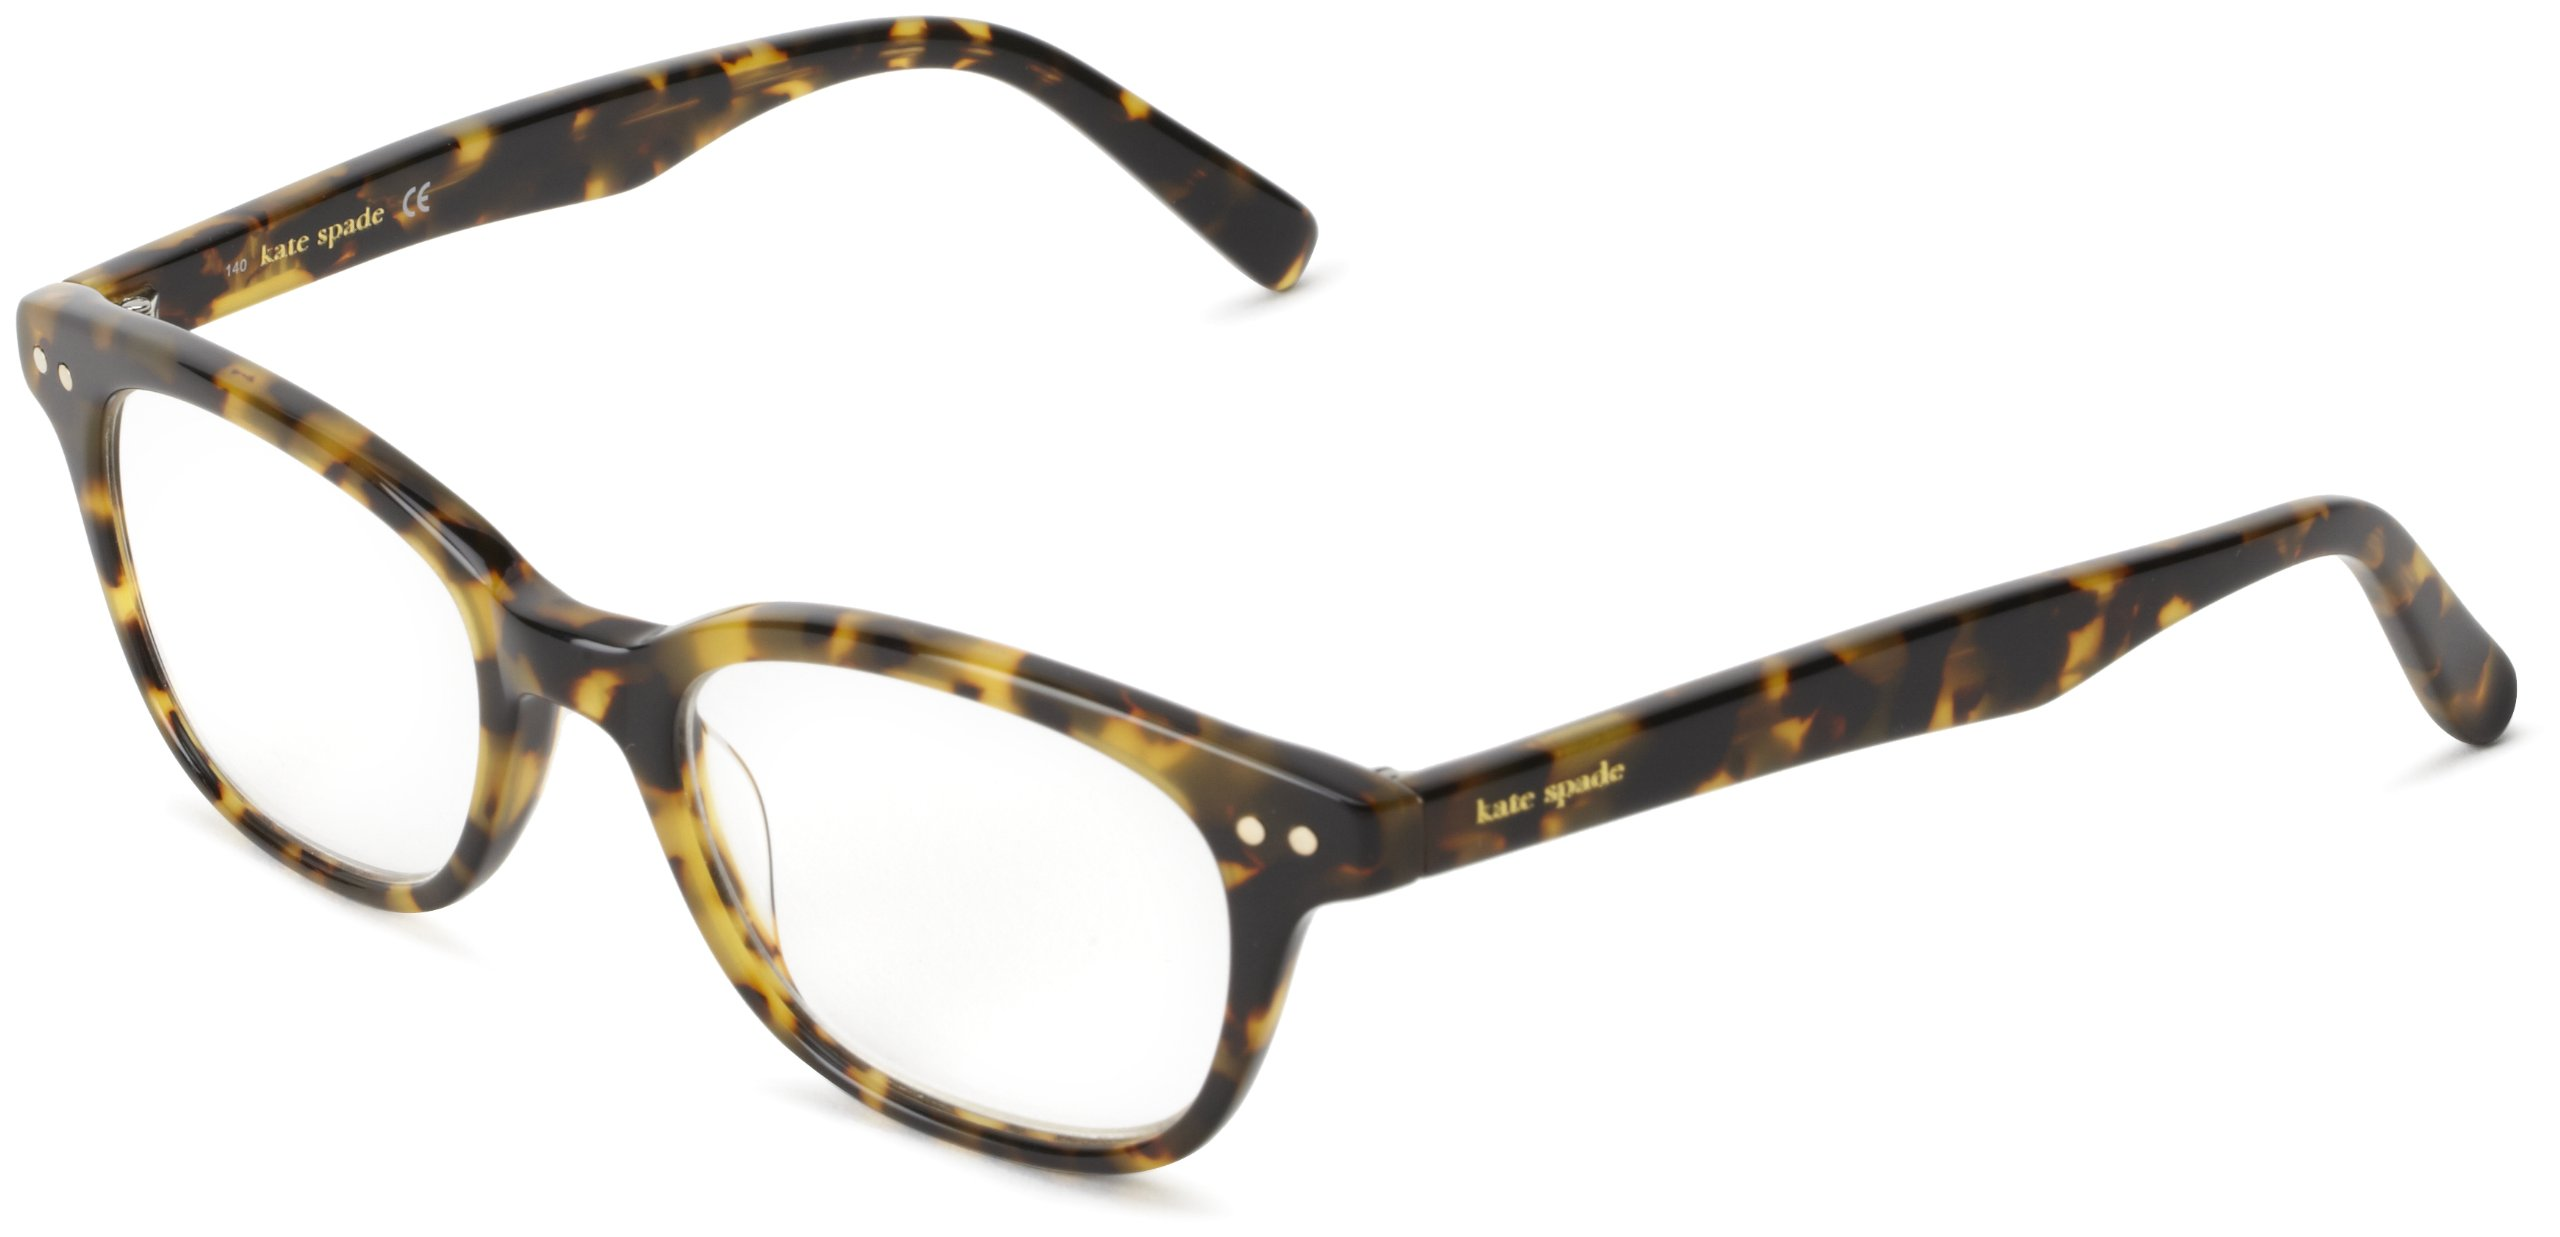 Kate Spade Women's Rebec Cat Eye Reading Glasses, Tokyo Tortoise, 49 mm (1.5 x Magnification Strength)